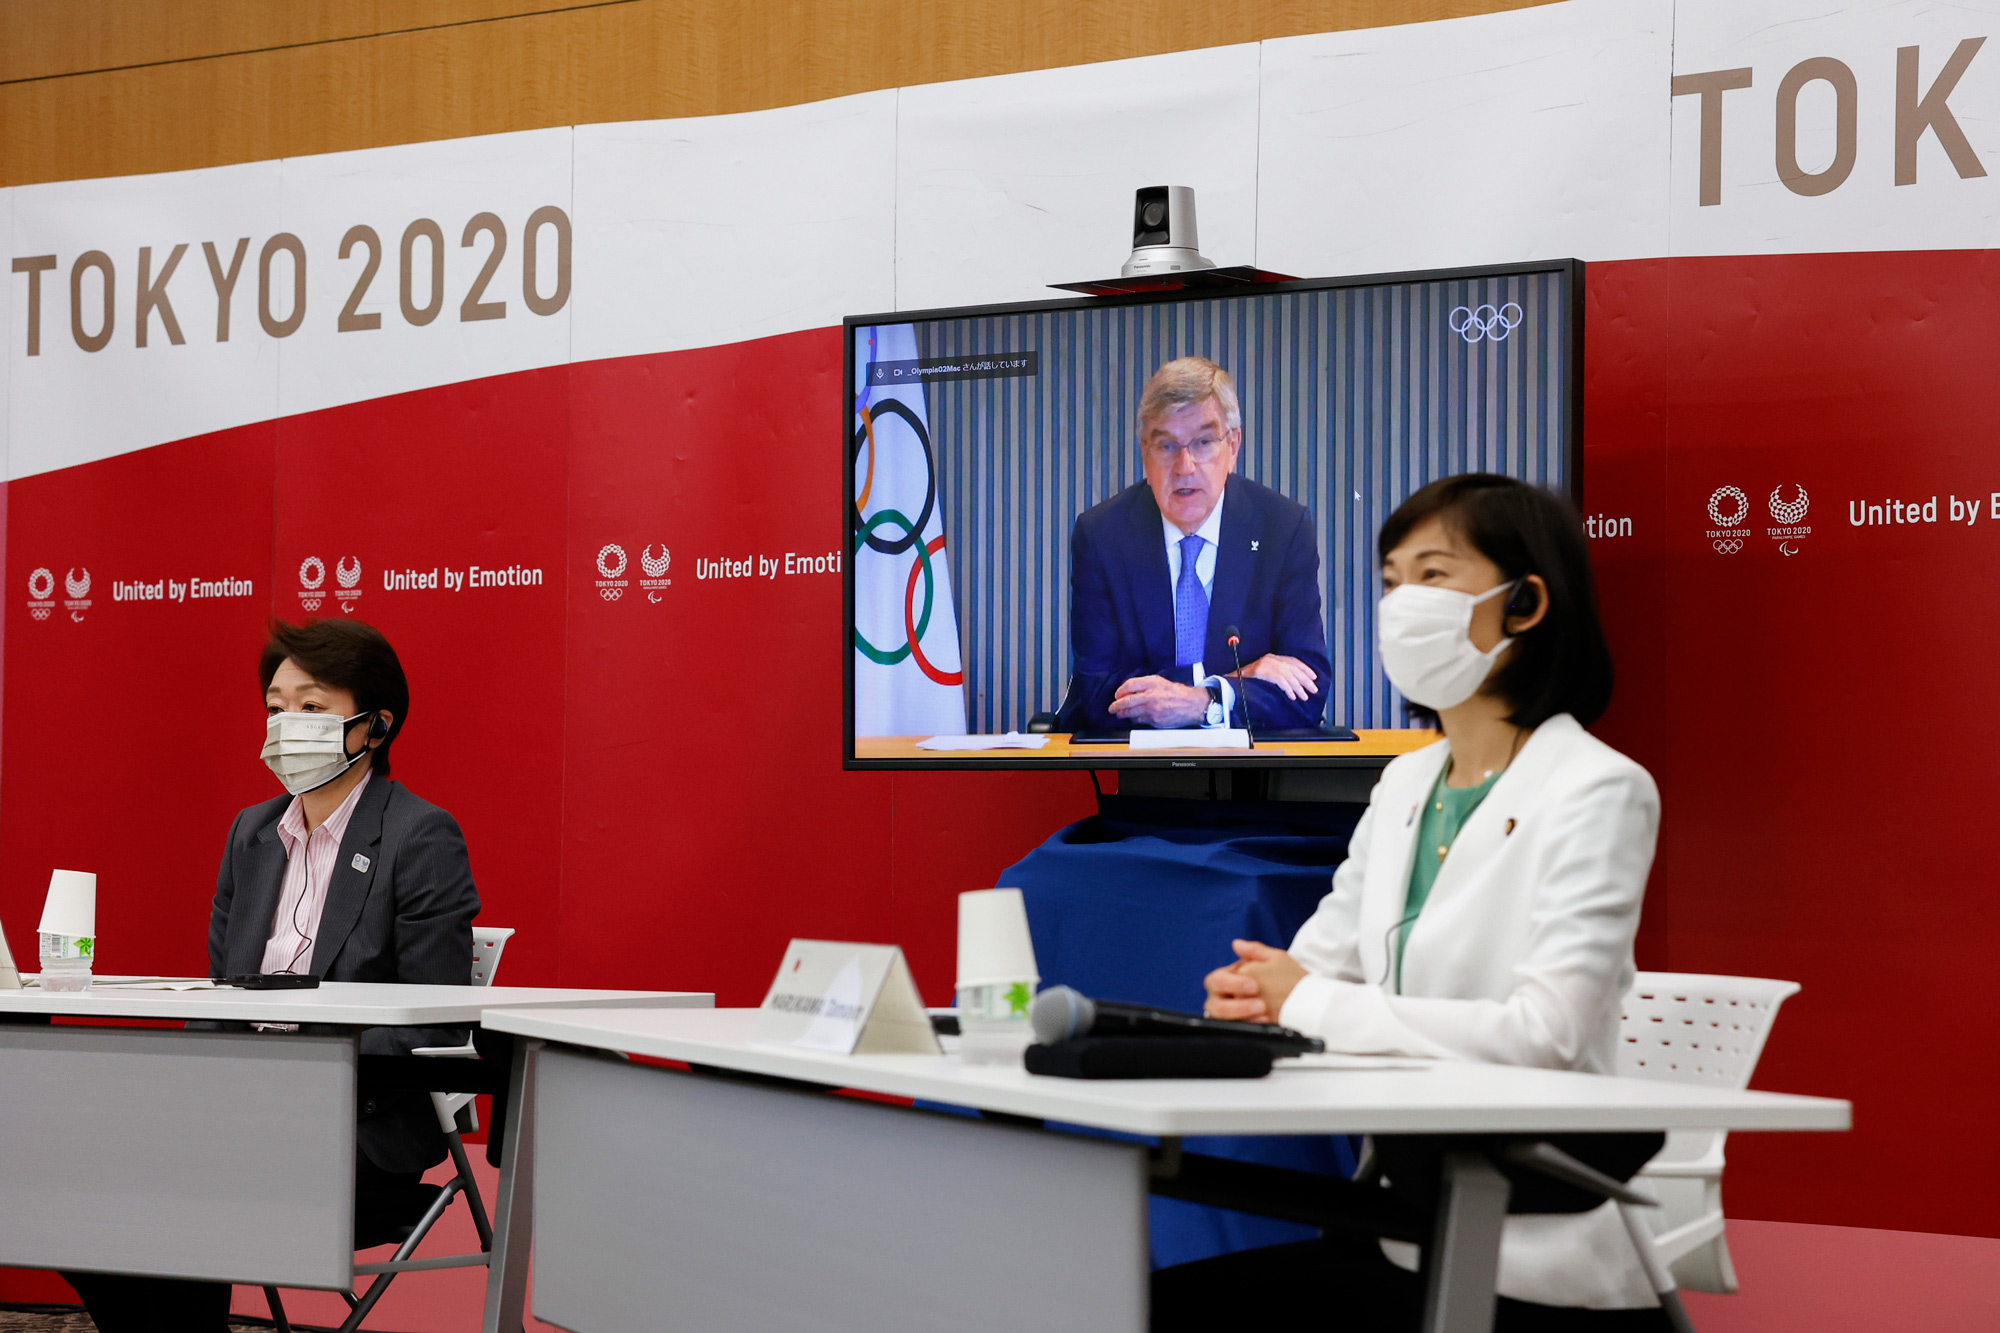 Tokyo 2020 President Seiko Hashimoto, left, Japanese Olympic Minister Tamayo Marukawa, right, and IOC President Thomas Bach, on a screen, attend a five-party online meeting at Harumi Island Triton Square Tower Y in Tokyo on June 21.